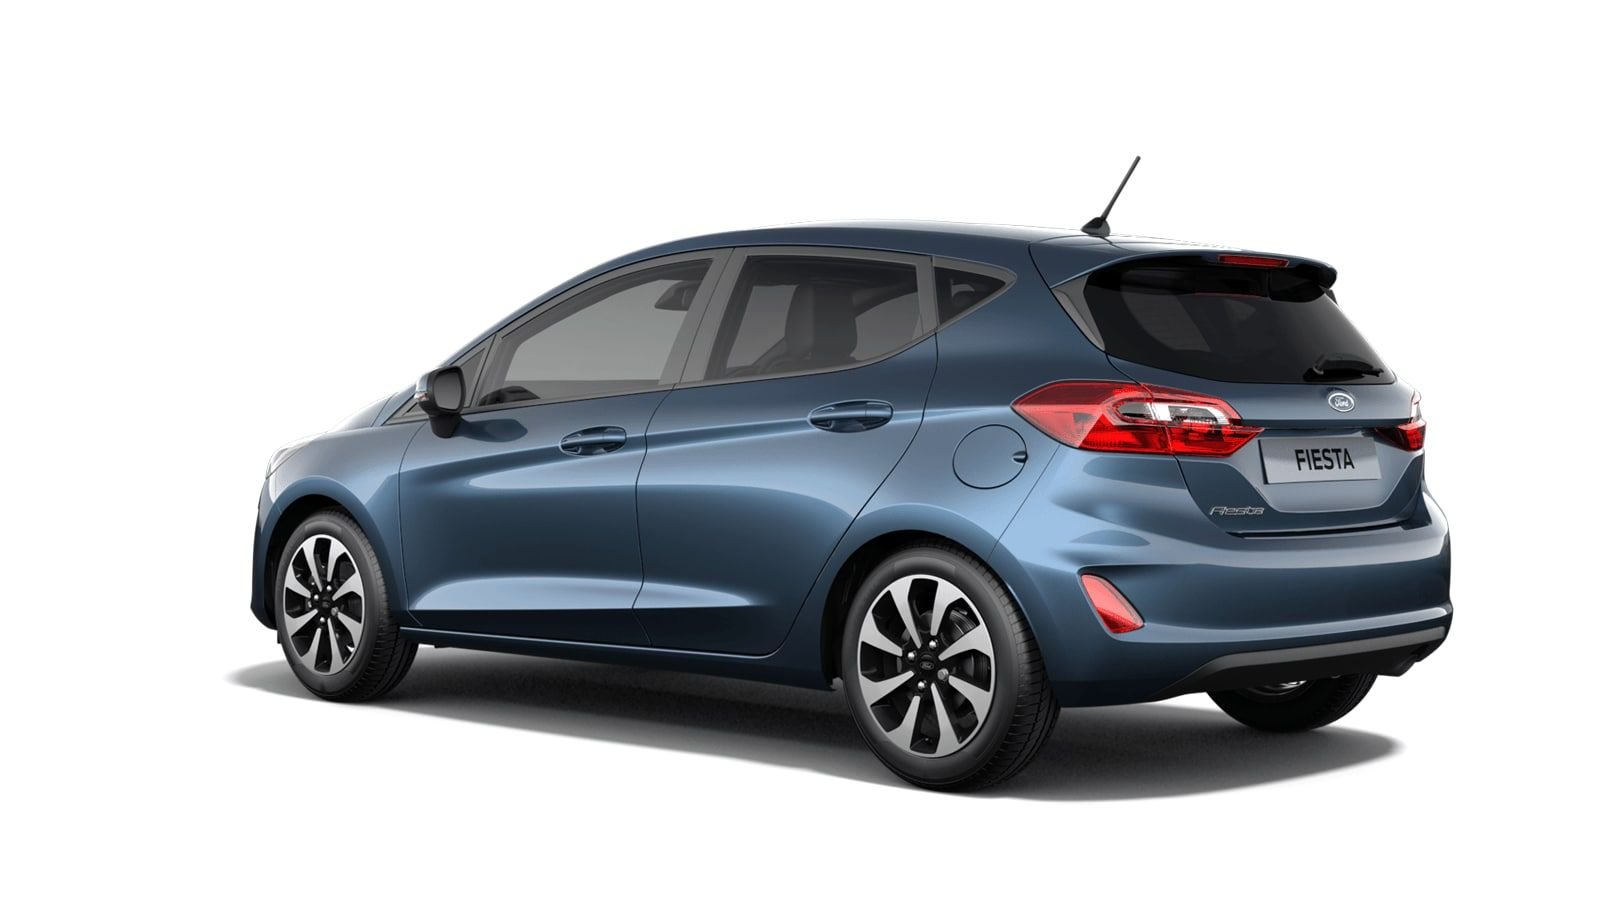 """Nieuw Ford All-new ford fiesta Connected 1.0i EcoBoost 95pk / 70kW M6 - 5d JKC - Metaalkleur """"Chrome Blue"""" 4"""